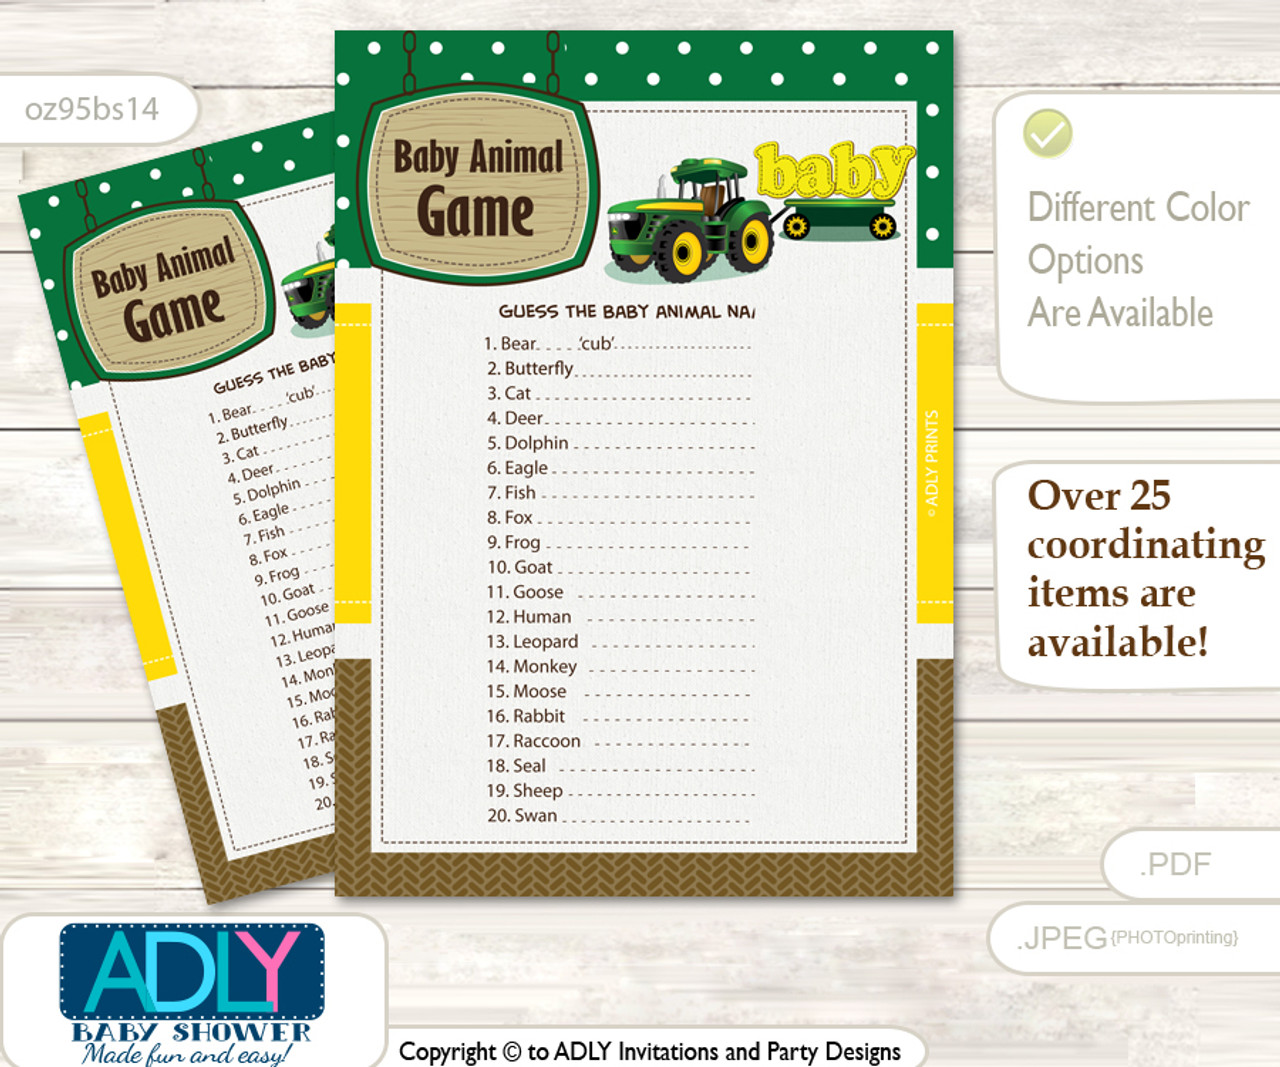 picture regarding Baby Animal Match Game Printable referred to as Boy Tractor What is inside Mommys Purse, Child Shower Purse Sport Printable Card , eco-friendly Yellow, Farm Printable Boy Tractor Youngster Animal Video game, Bet Names